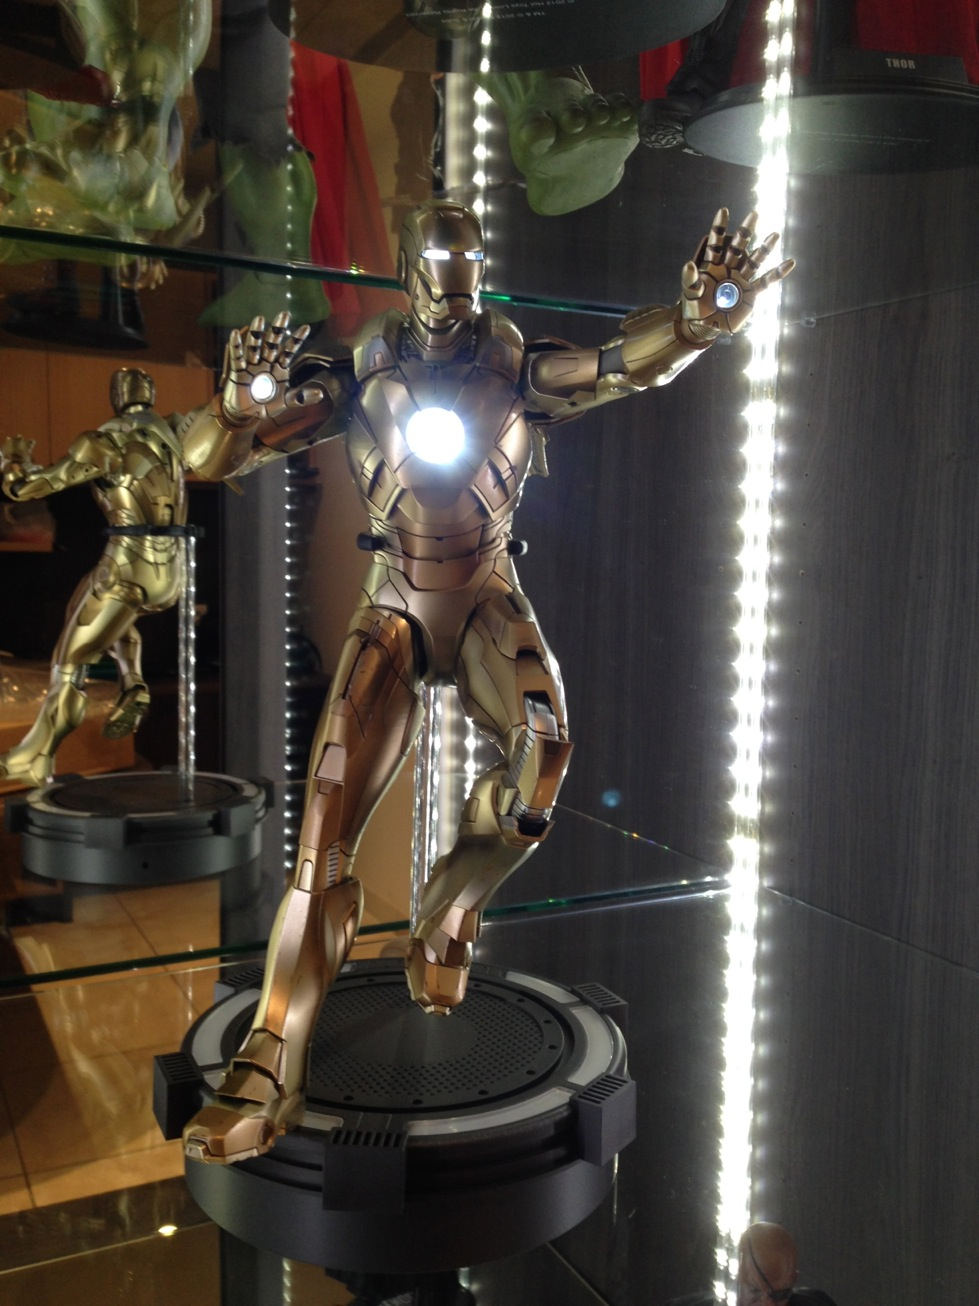 Scanjet784 - Collection Hot Toys - News page 3 - - Page 2 1311060822489422611708983